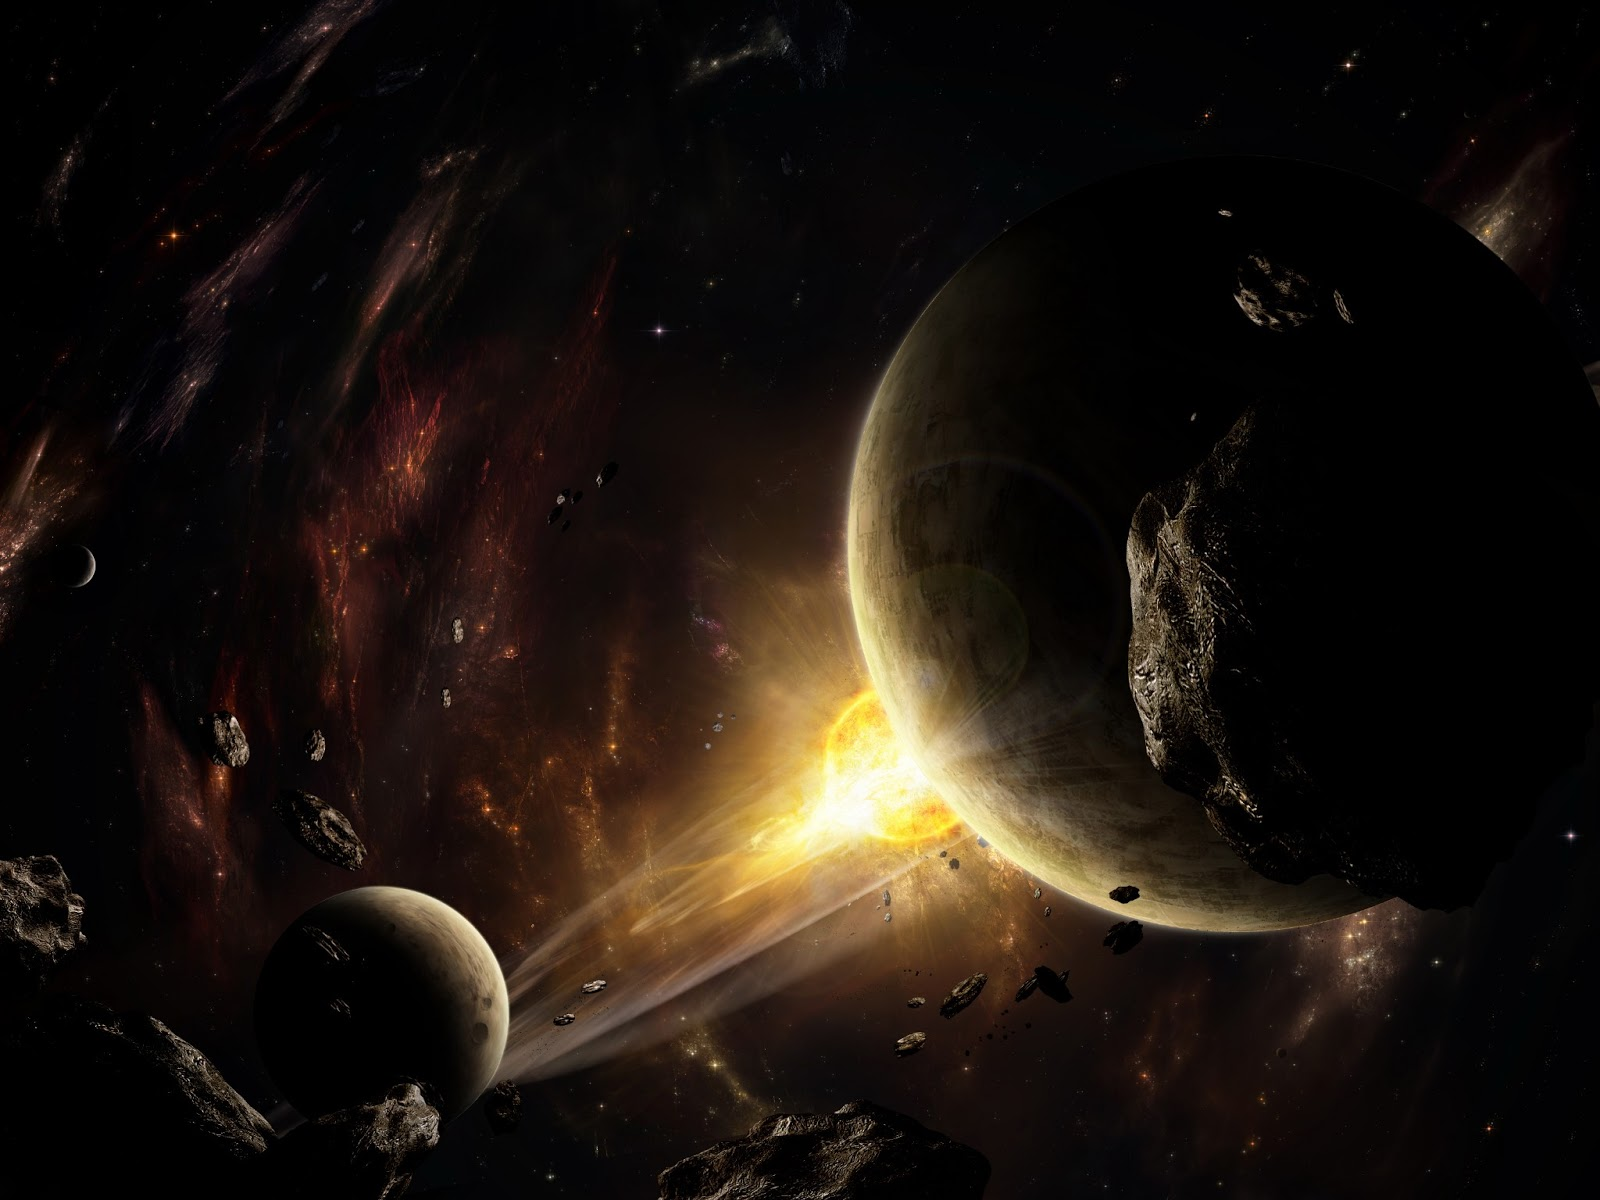 Hd Space Wallpapers 1080p: SPACE WALLPAPERS HD 1080p